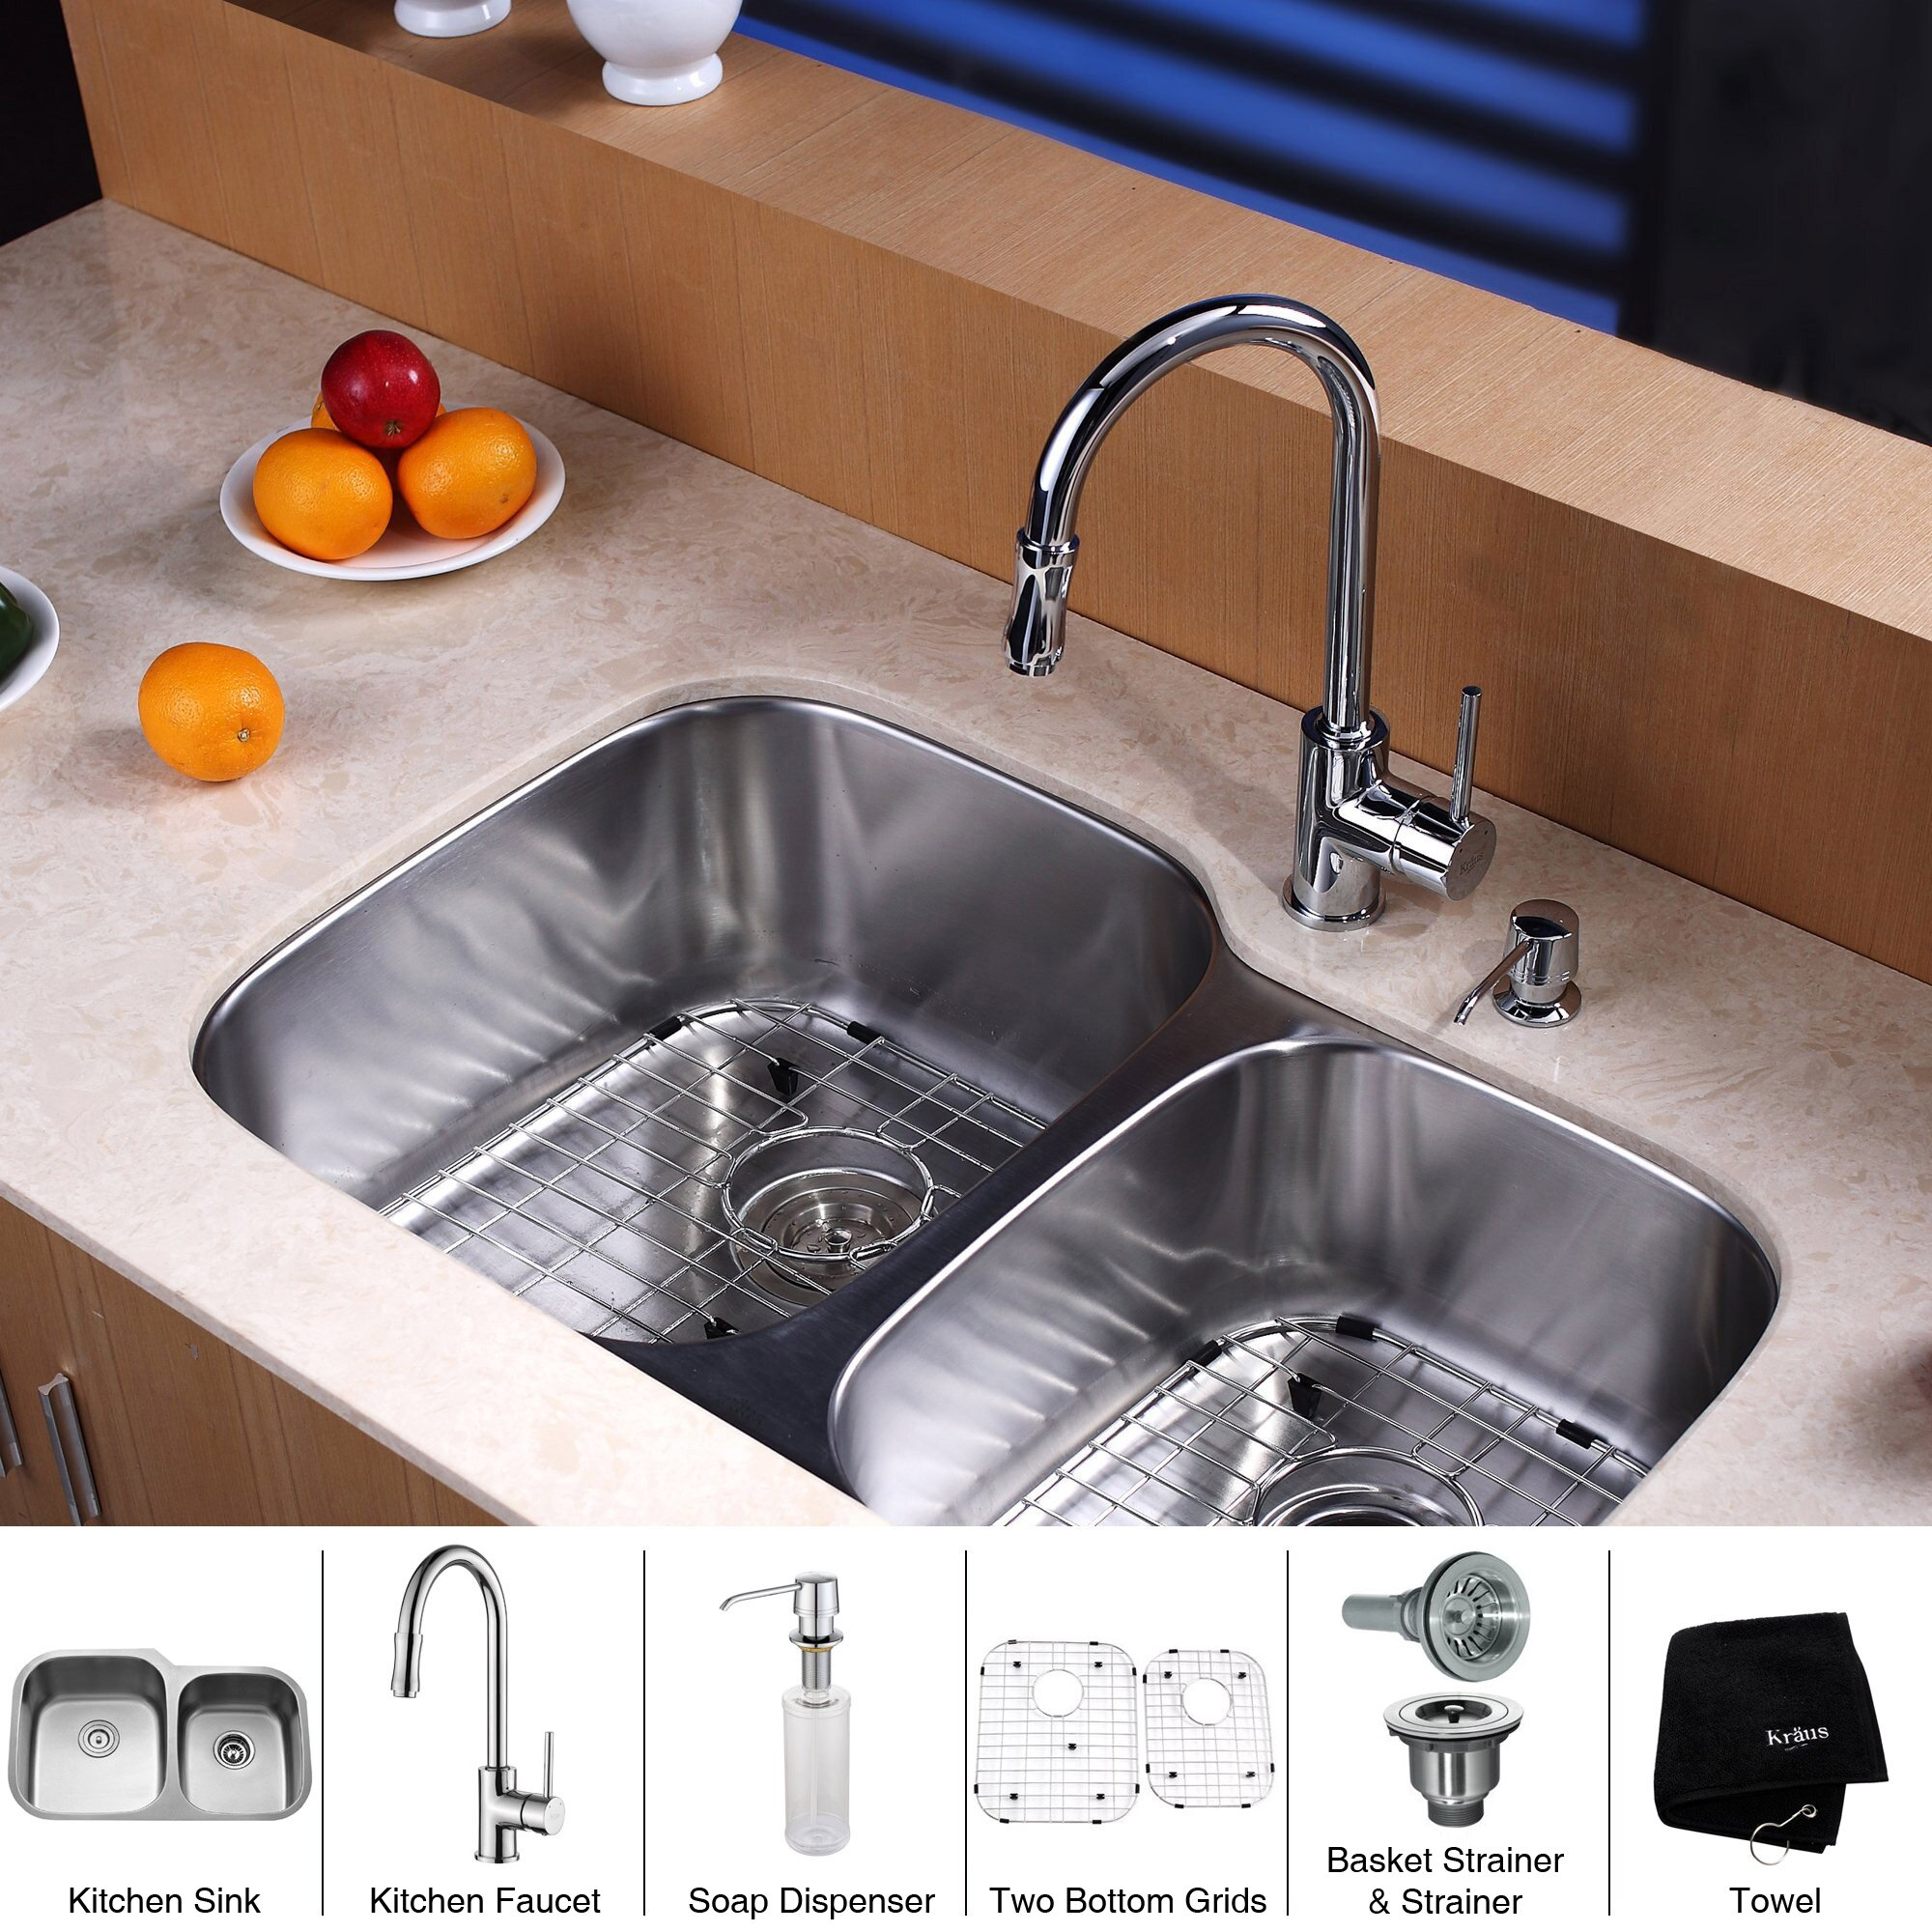 Kitchen Sink Kraus: Kraus 8 Piece Double Bowl Kitchen Sink Set